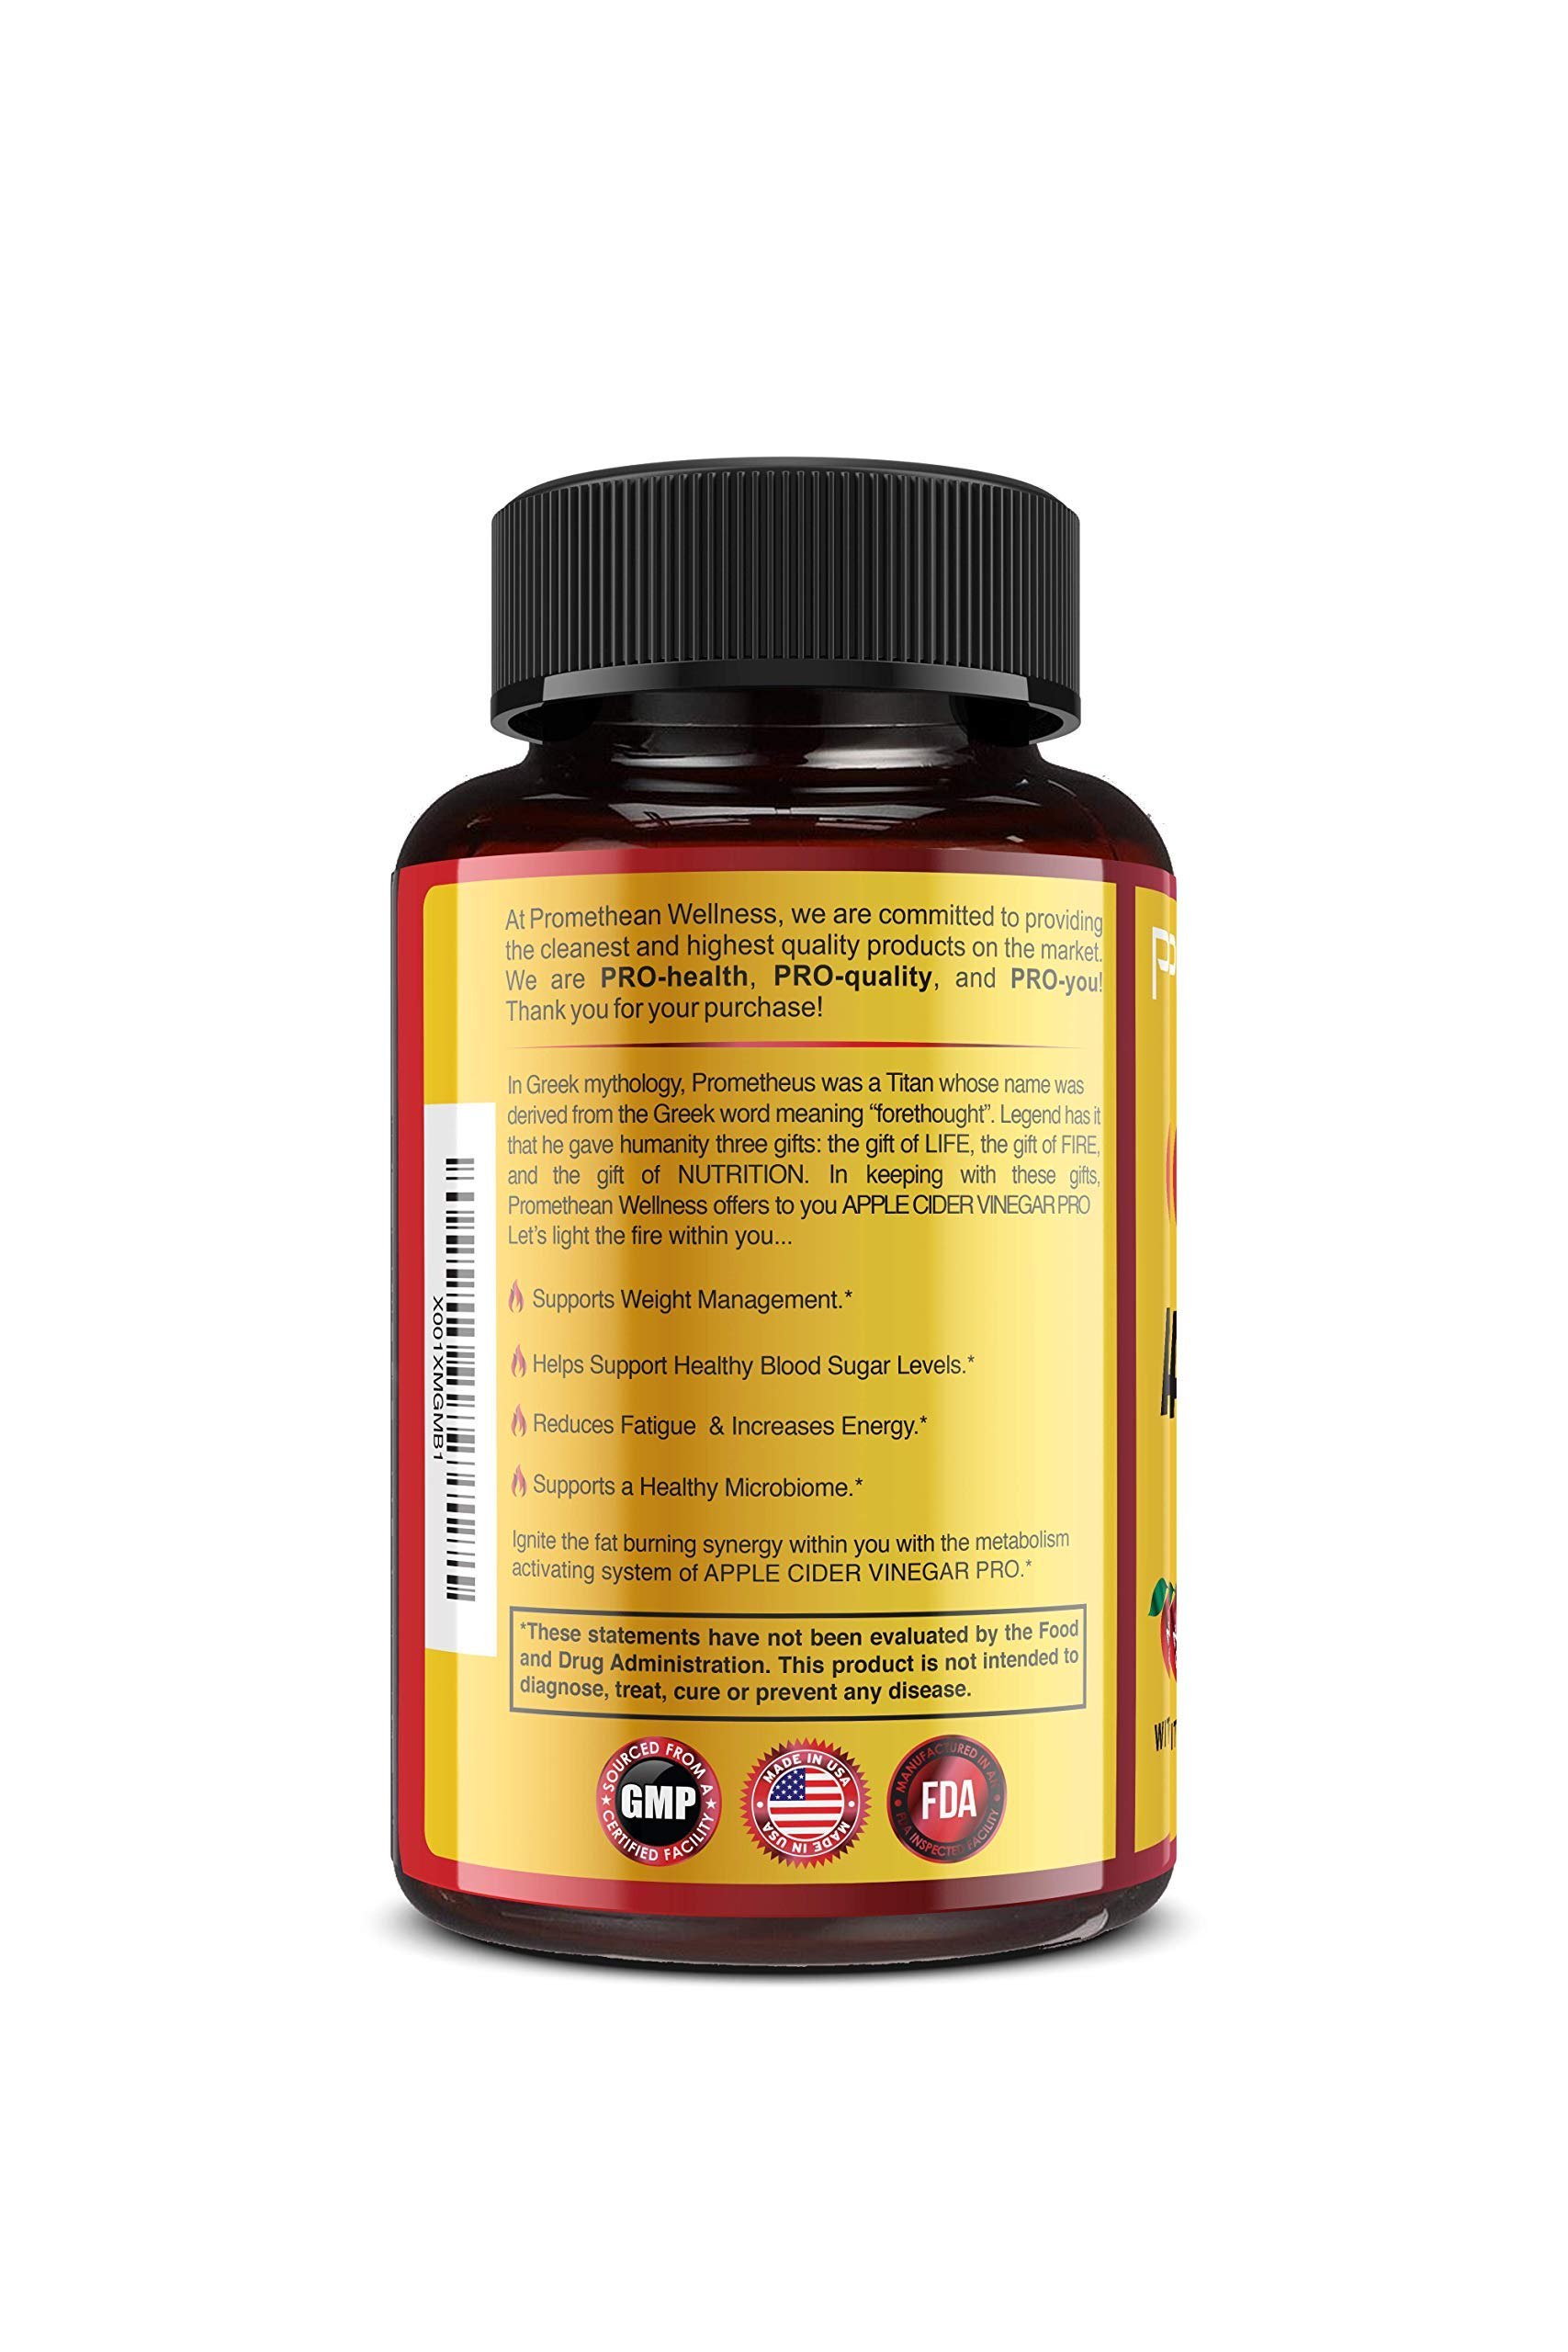 Organic Apple Cider Vinegar Capsules ACV PRO Diet Pills Detox Cleanse for Weight Loss Raw Unfiltered With Mother Powder Supplements Tablets Vitamins Cayenne Pepper Inulin Prebiotics Lemon 1500mg 90 ct by Promethean Wellness LLC (Image #5)